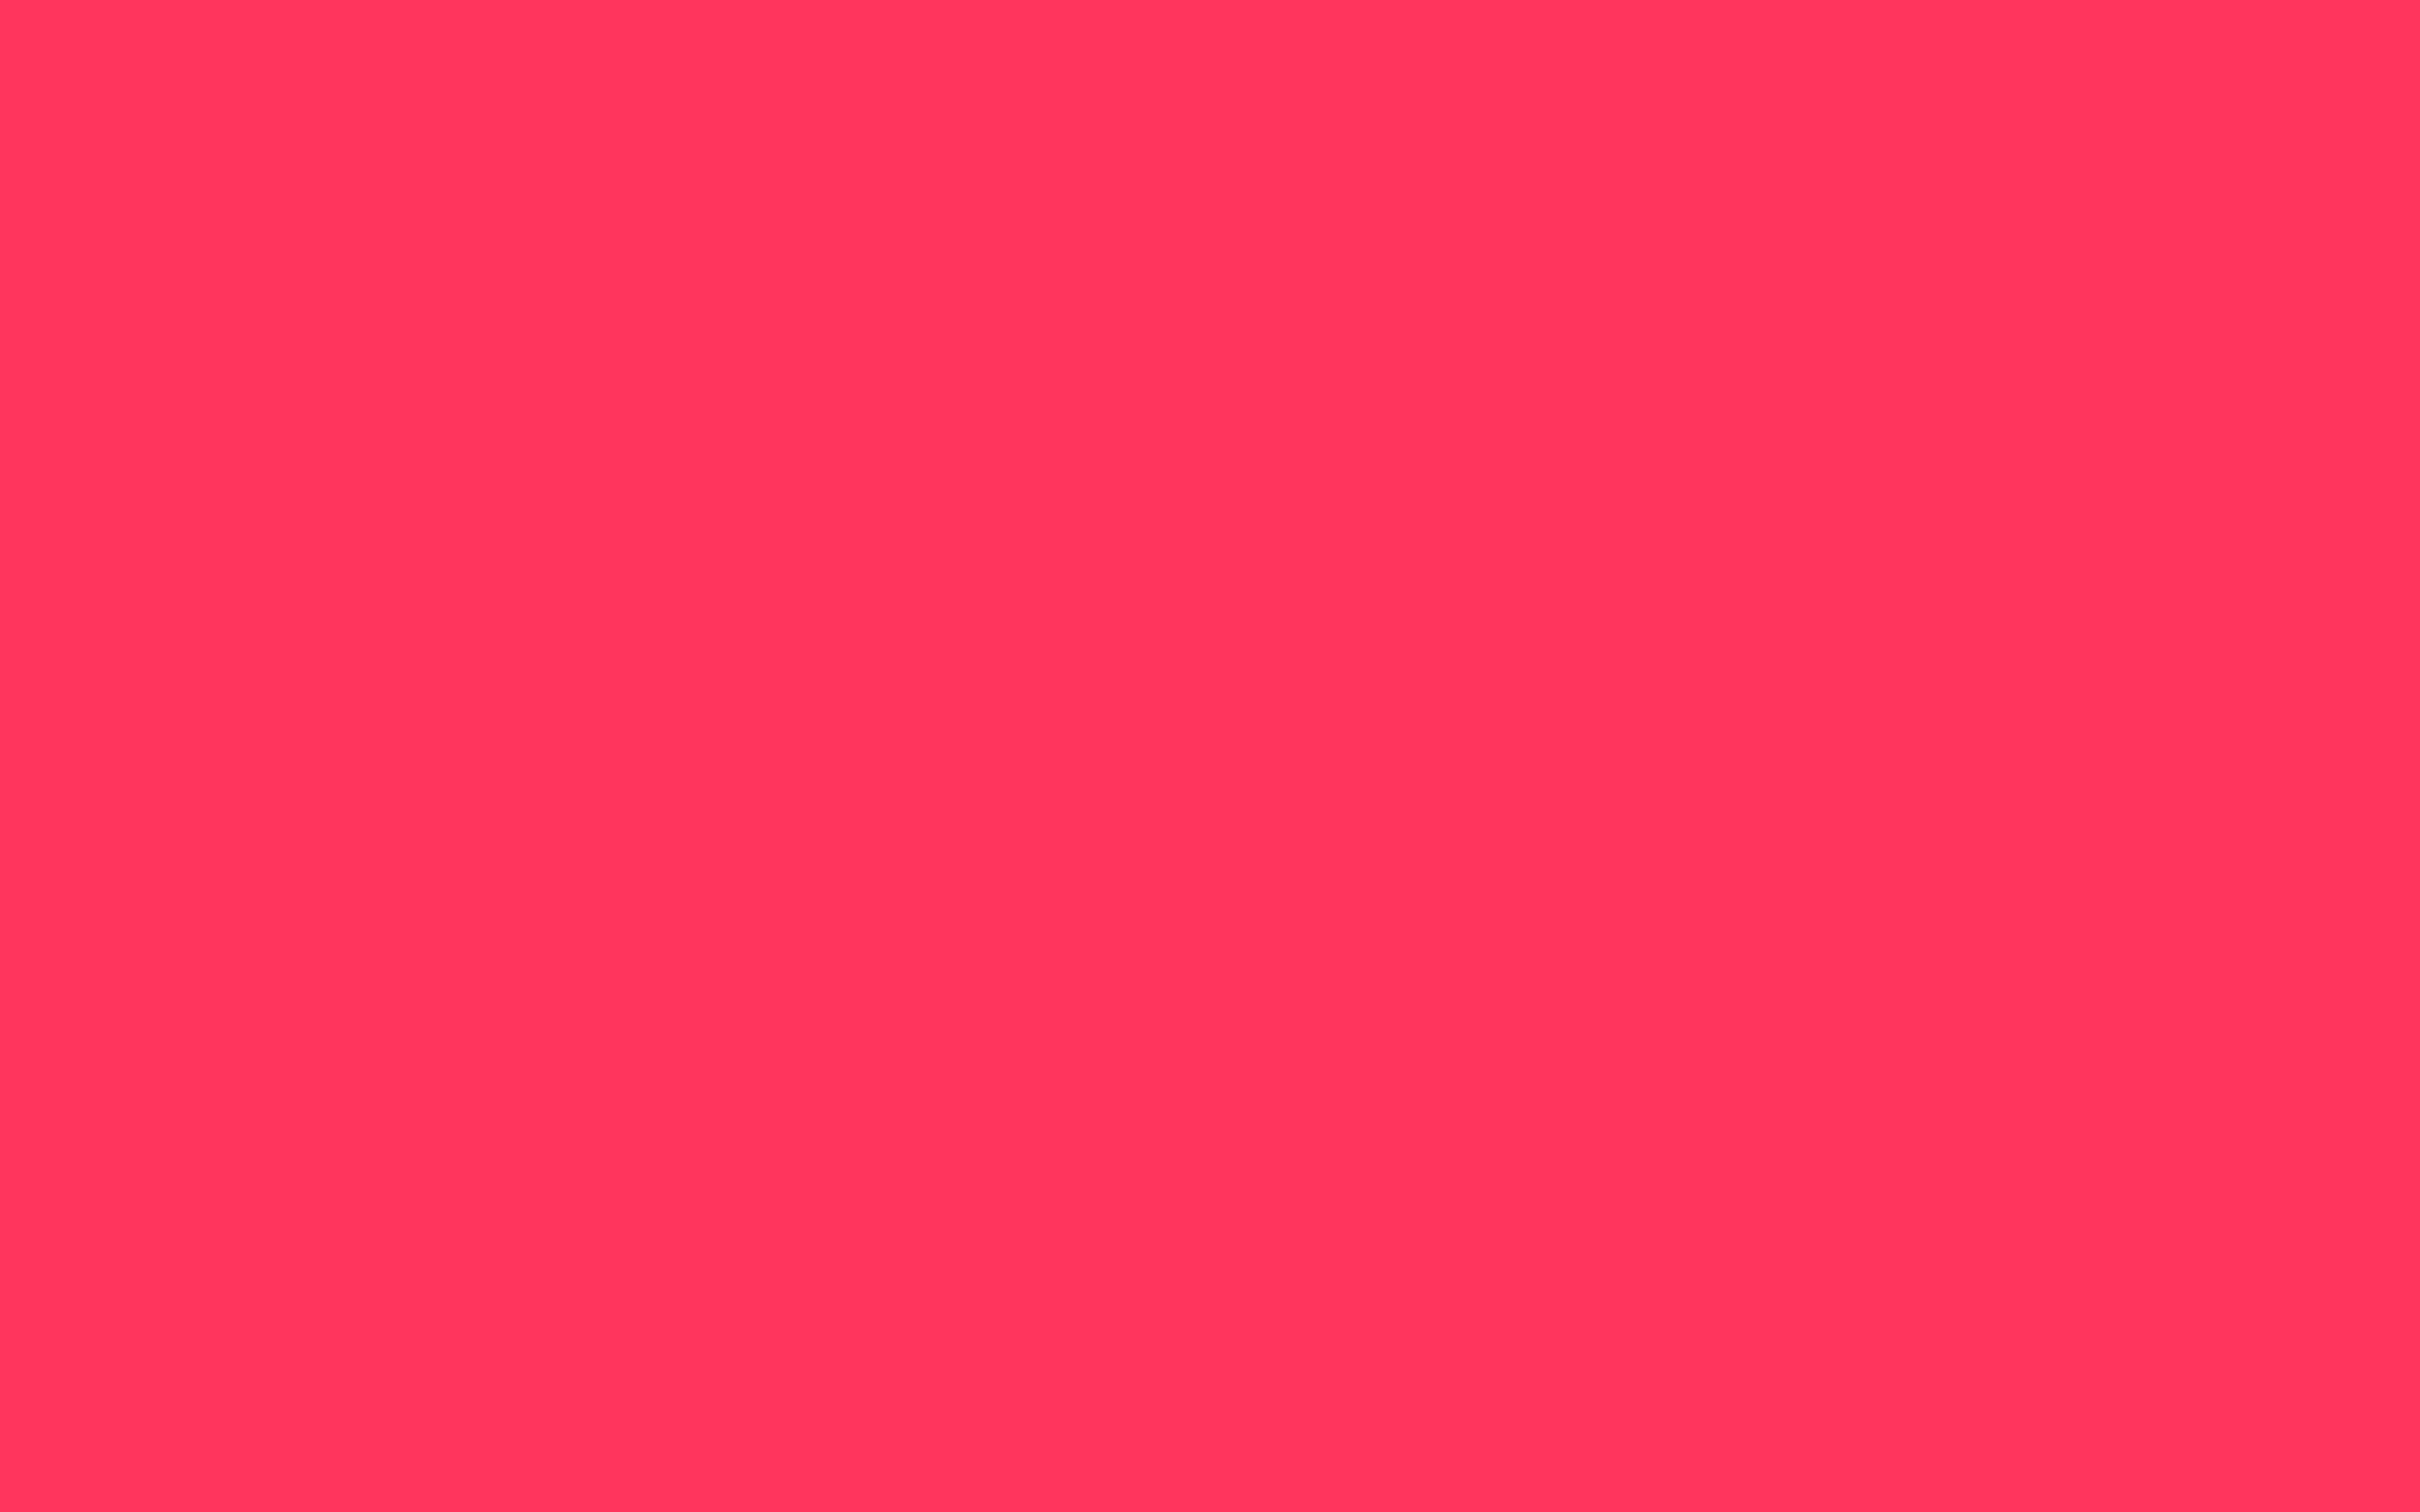 2560x1600 Radical Red Solid Color Background